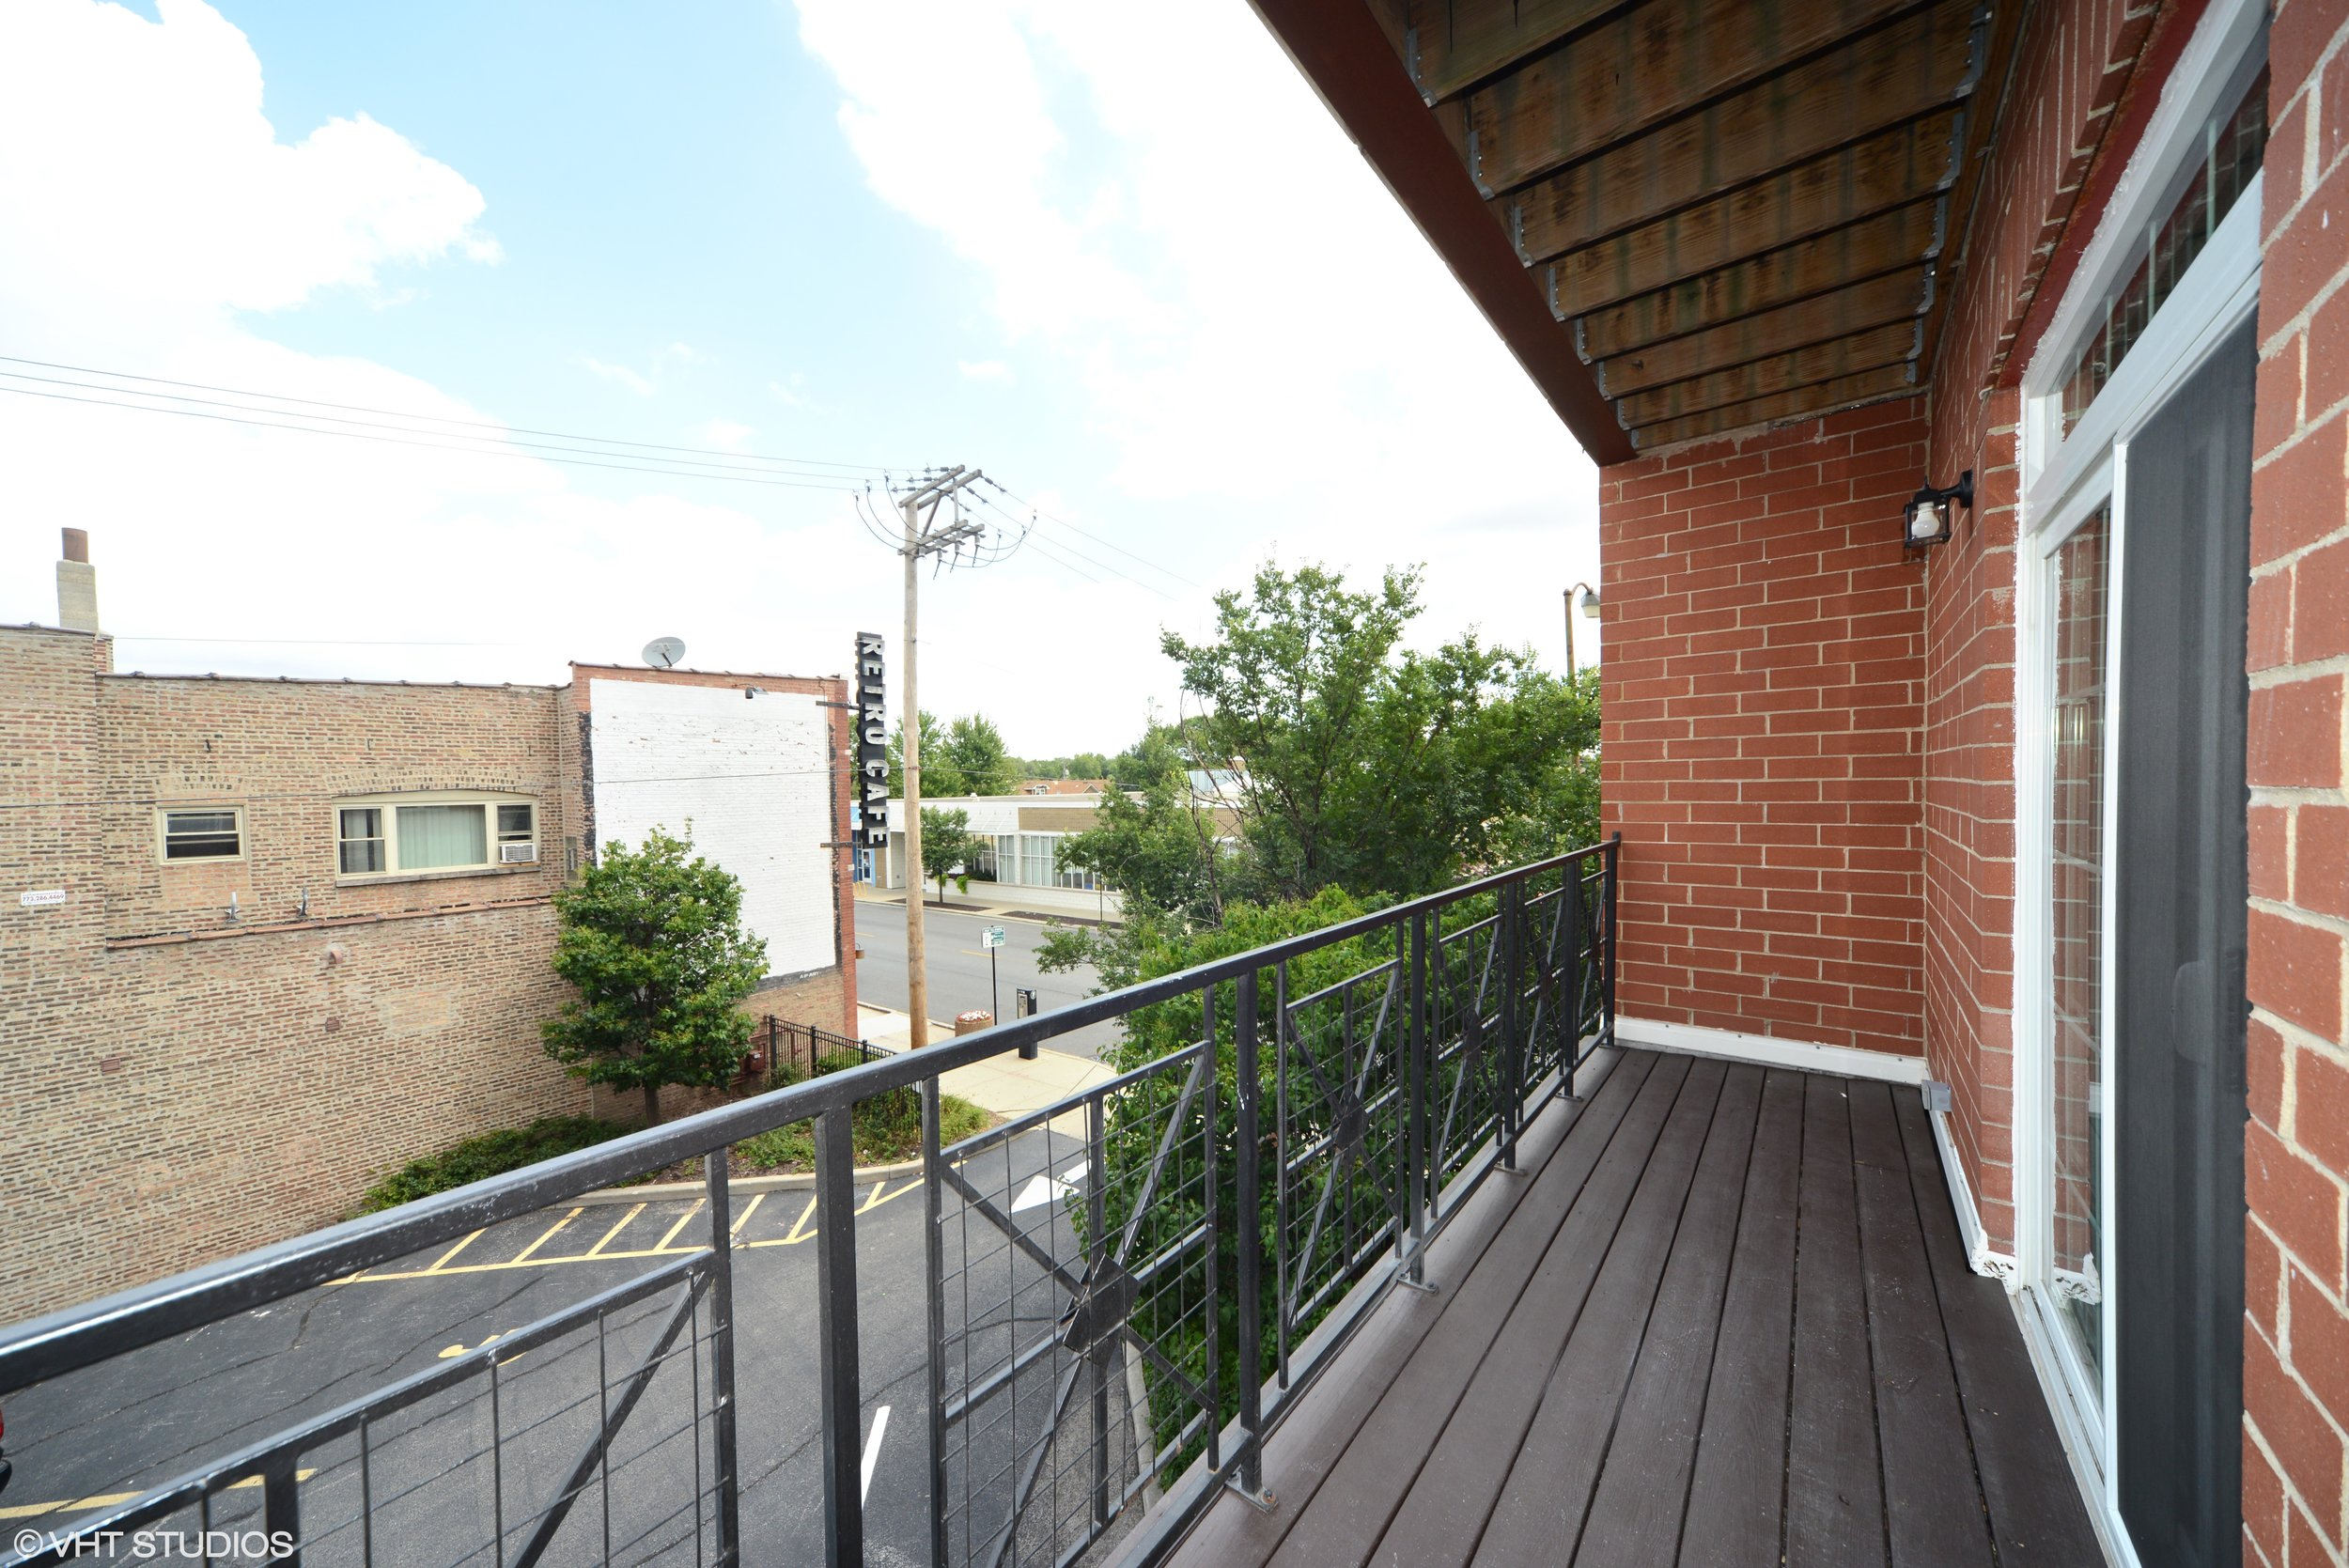 11_3234NorthCentralAve_206_117_Terrace_HiRes.jpg